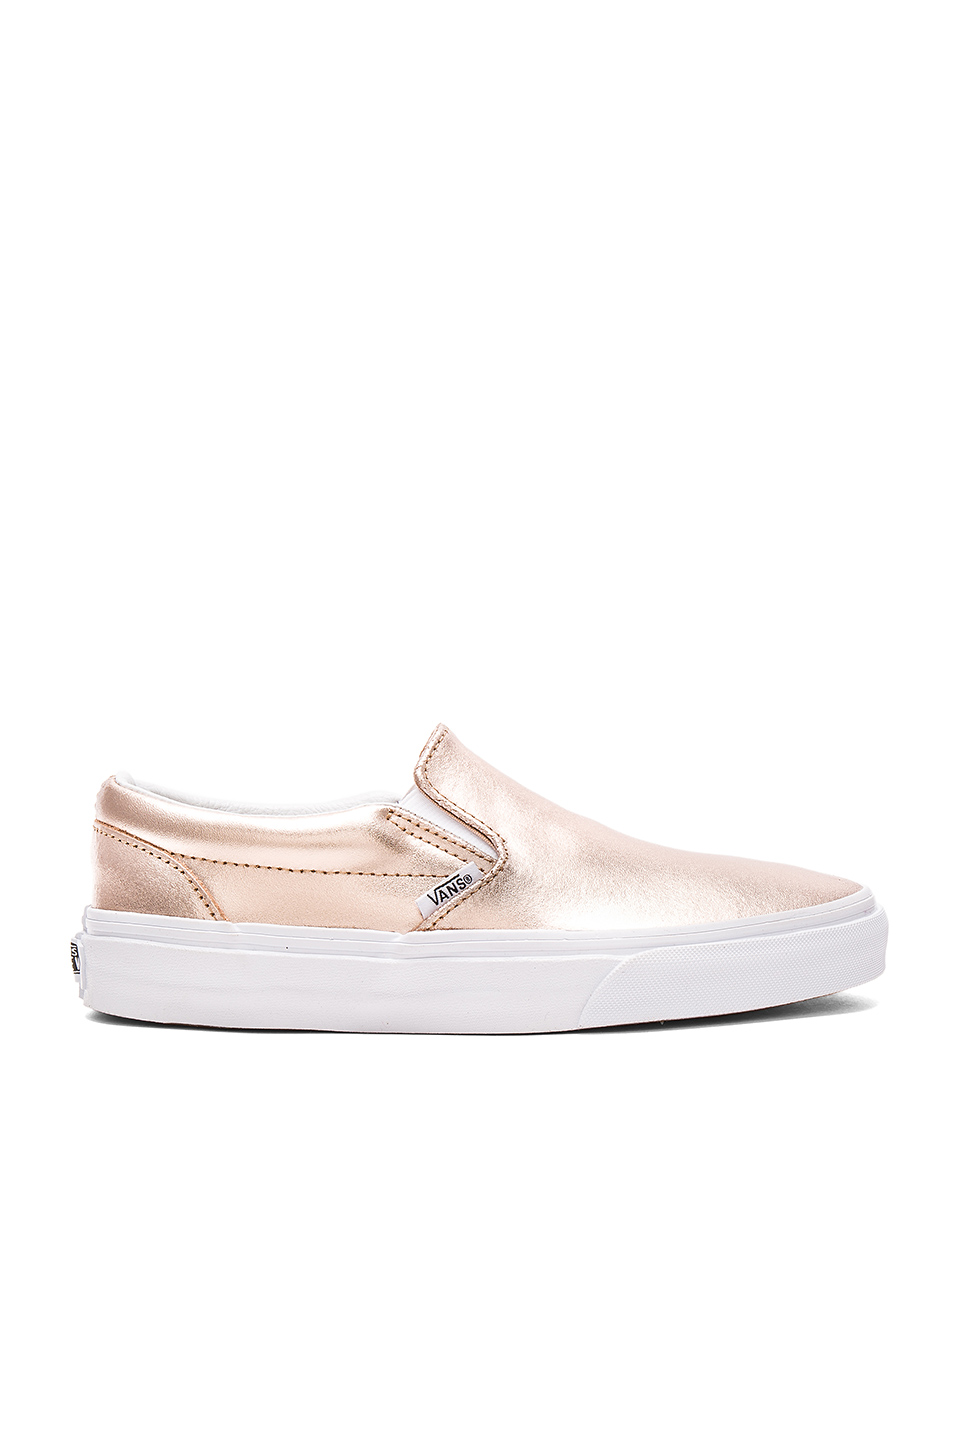 79aa06416f Vans Metallic Leather Classic Slip-On In Rose Gold